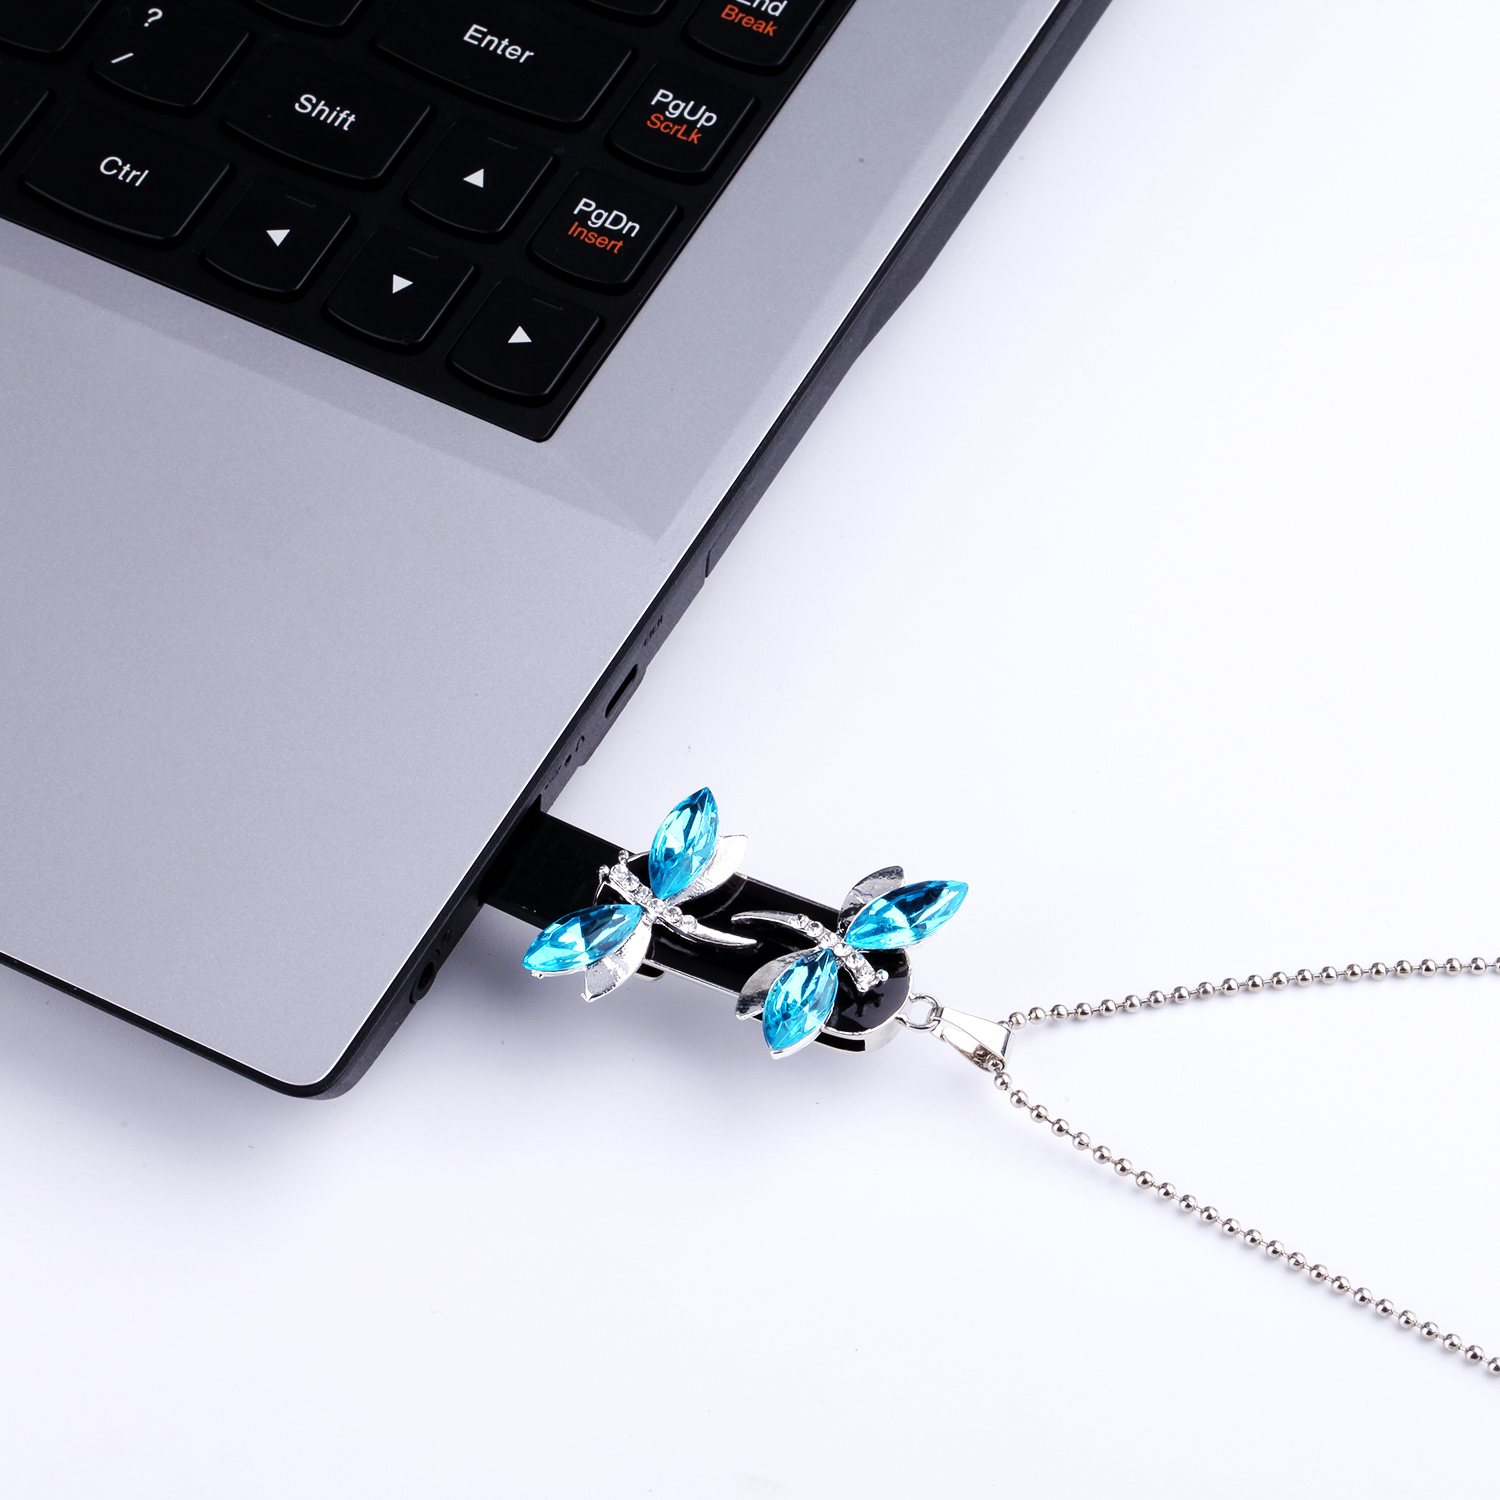 Real Capacity Crystal Diamond Dragonfly USB Flash Drive 128GB Pen Drive 8GB 16GB 32GB 64gb Necklace Jewelry USB Memory Stick